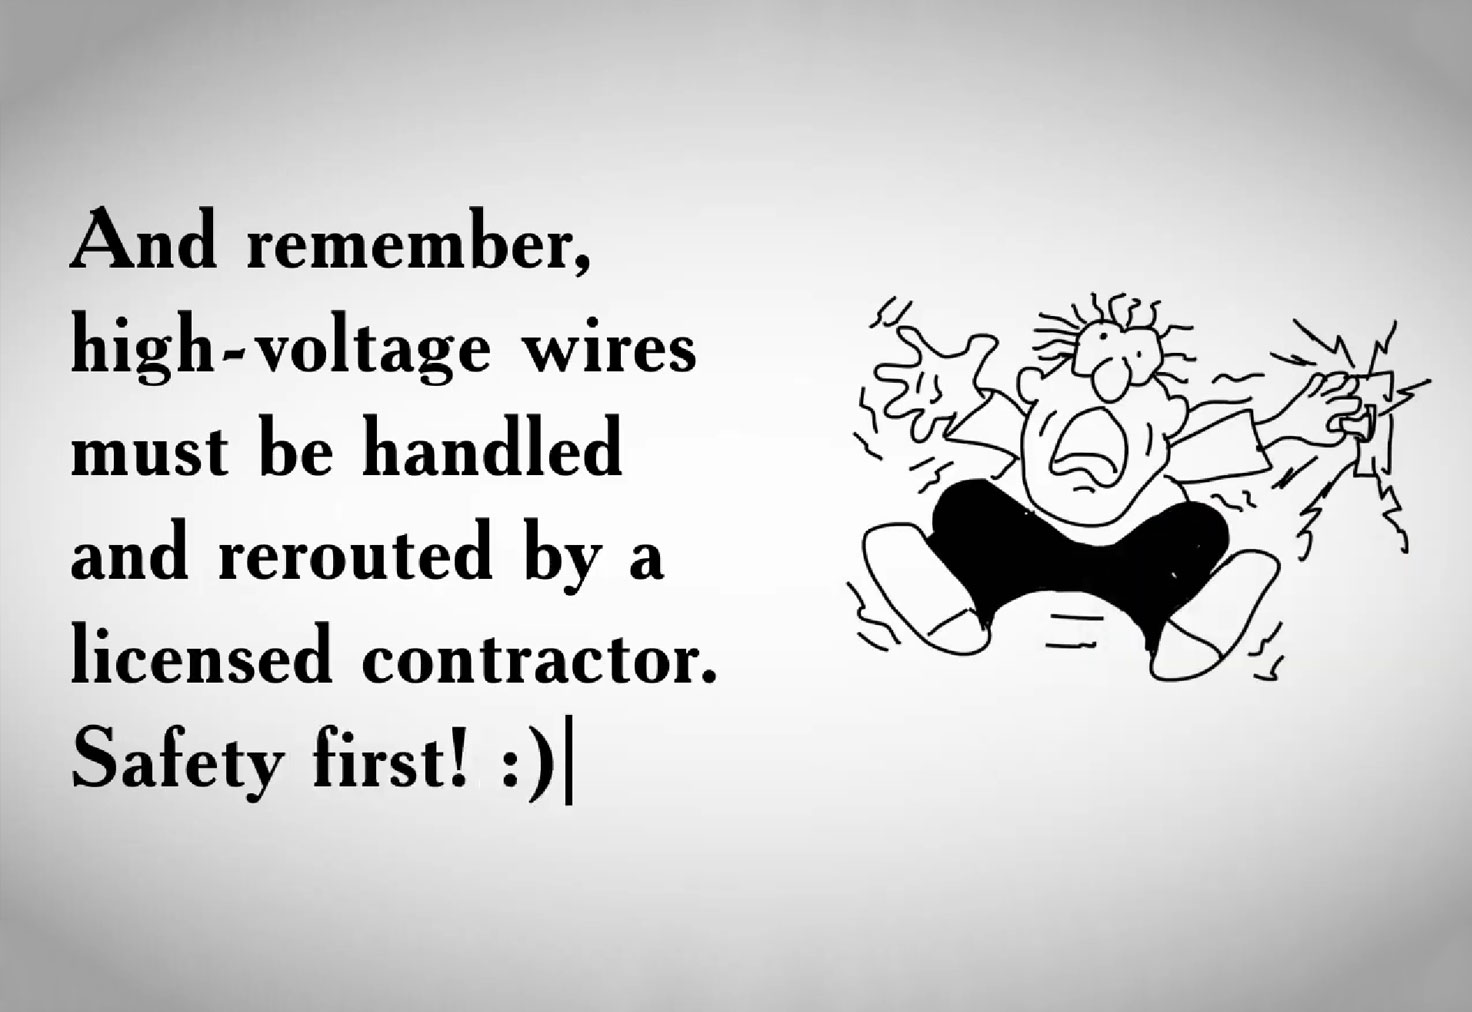 High-voltage wires must be handled by licensed contactor